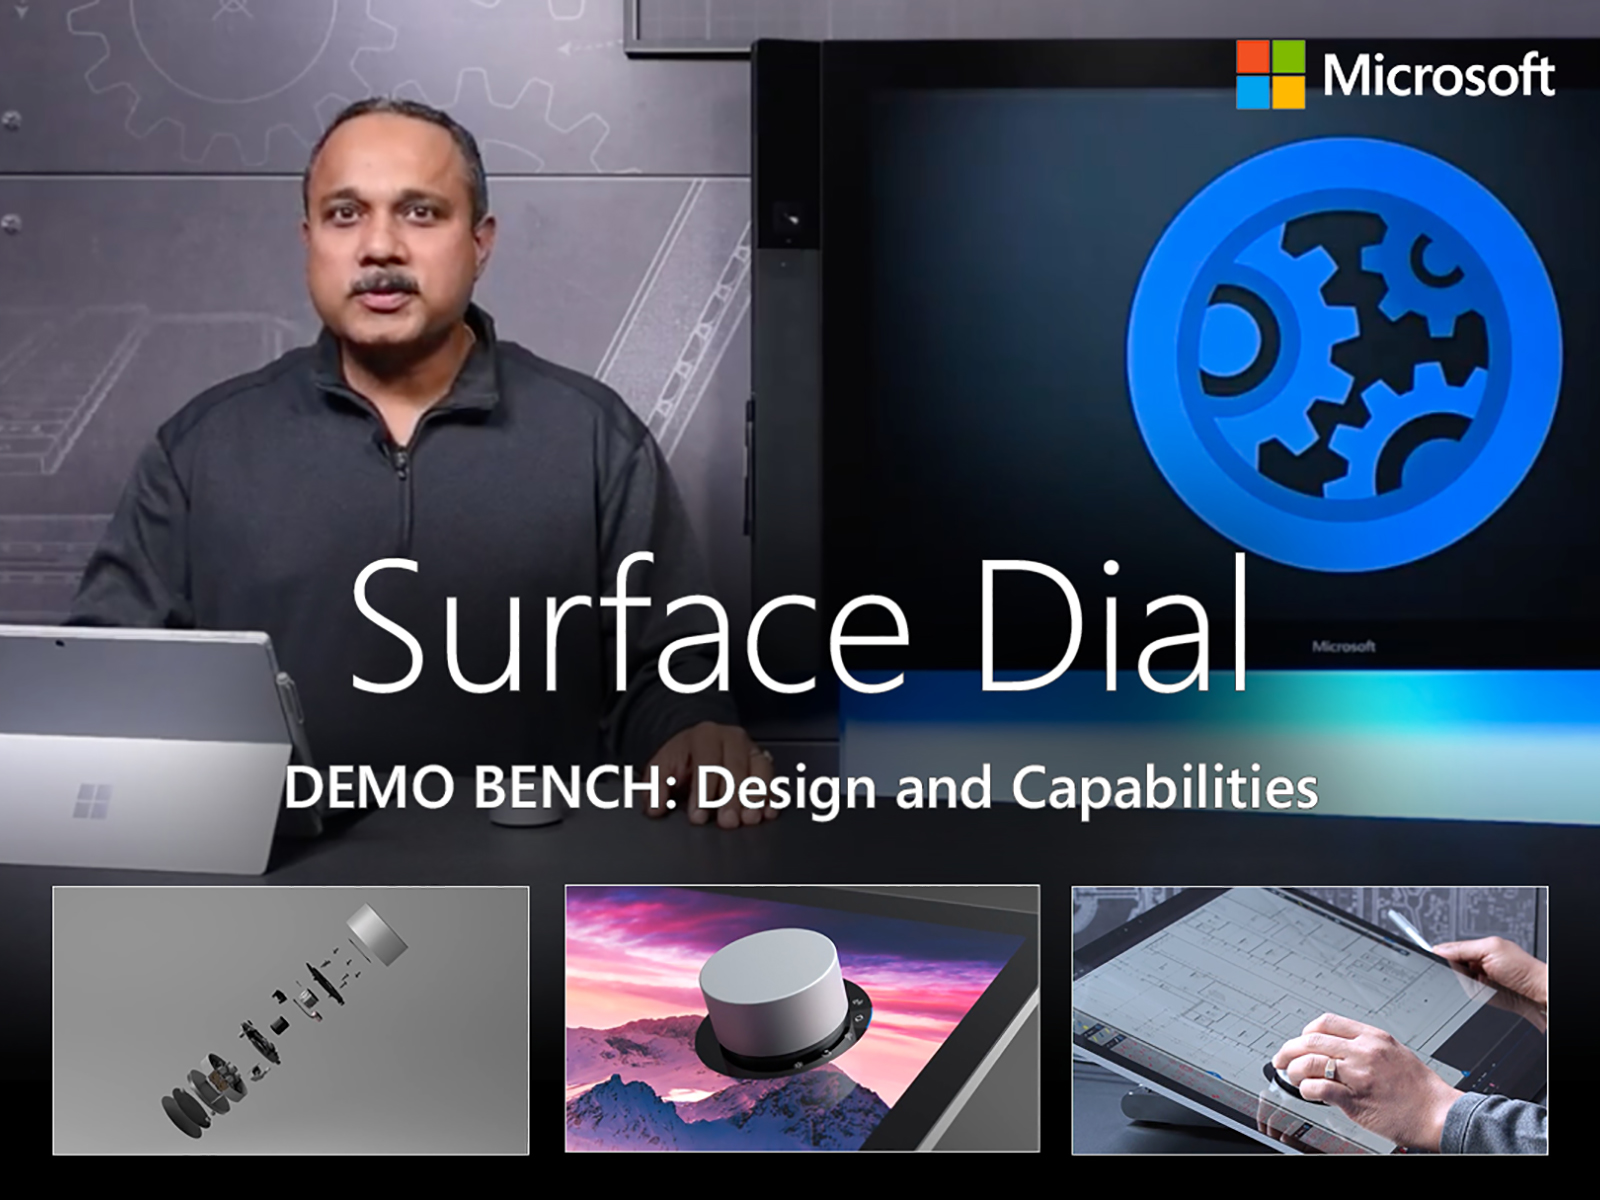 Artwork for The design and capabilities of the new Surface Dial